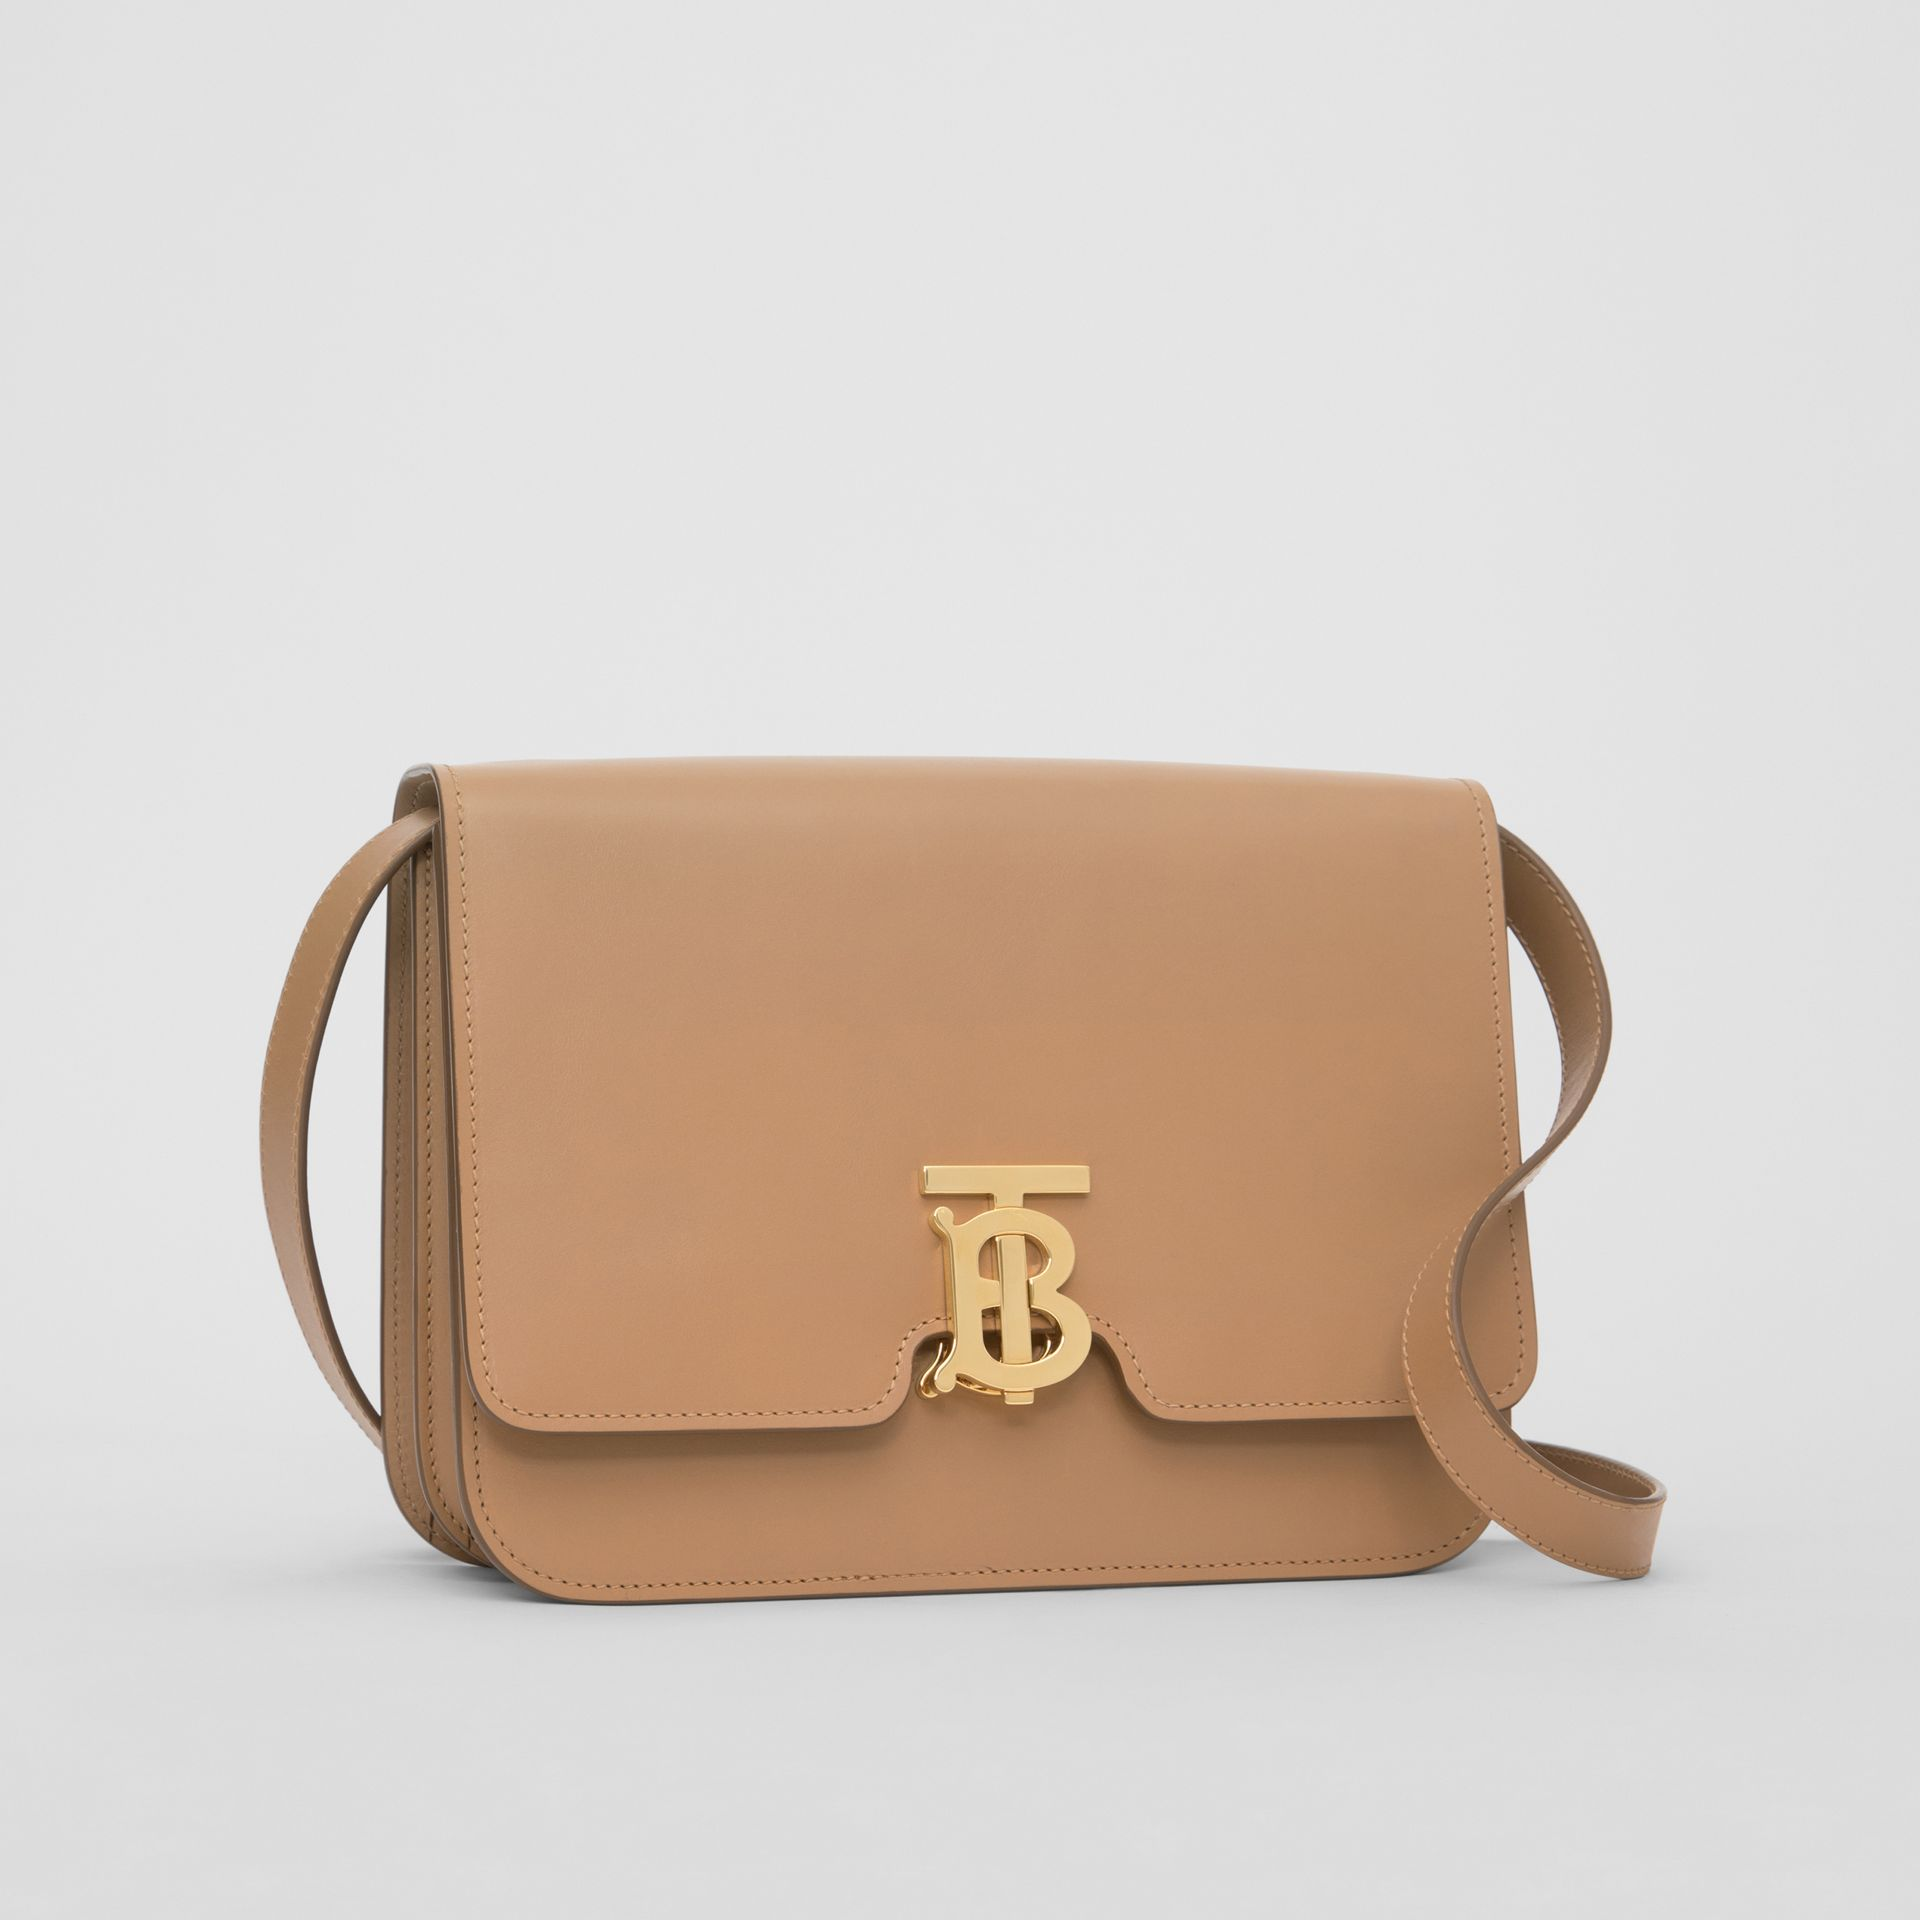 Medium Leather TB Bag in Light Camel - Women | Burberry Canada - gallery image 3